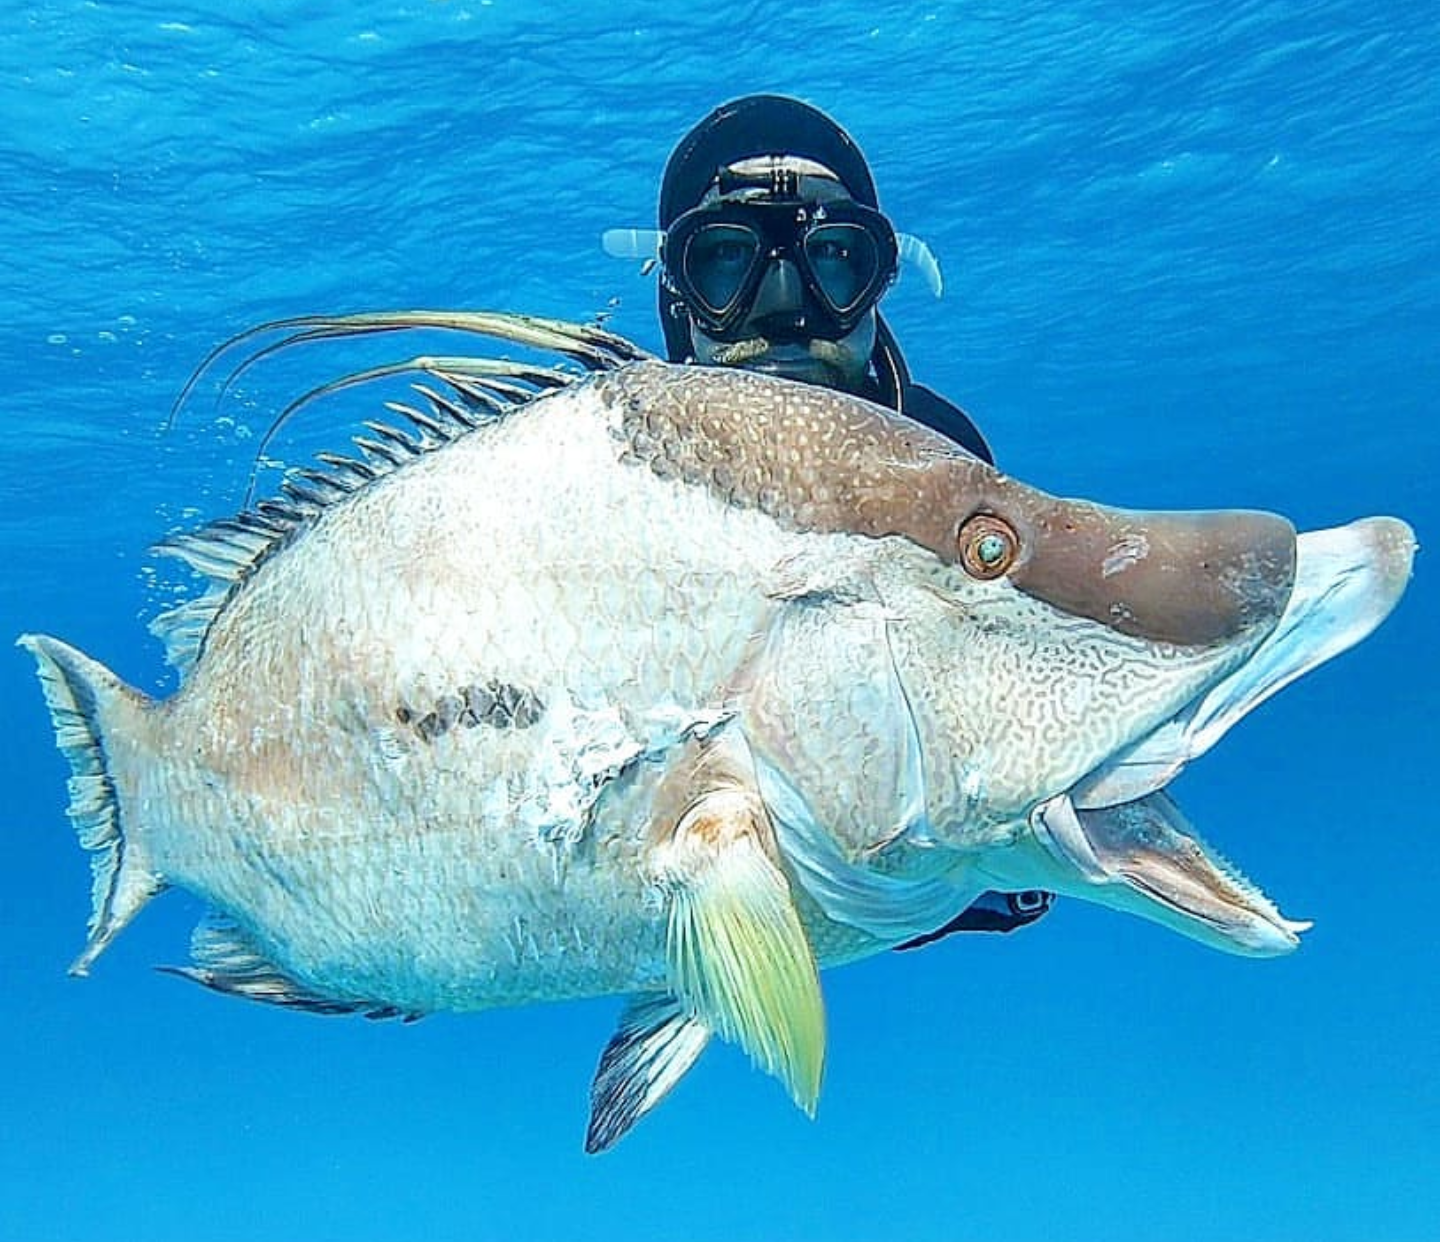 Spearfishing, freediving, polespear, headhunter spearfishing, hog fish, freedive, hunting, fishing